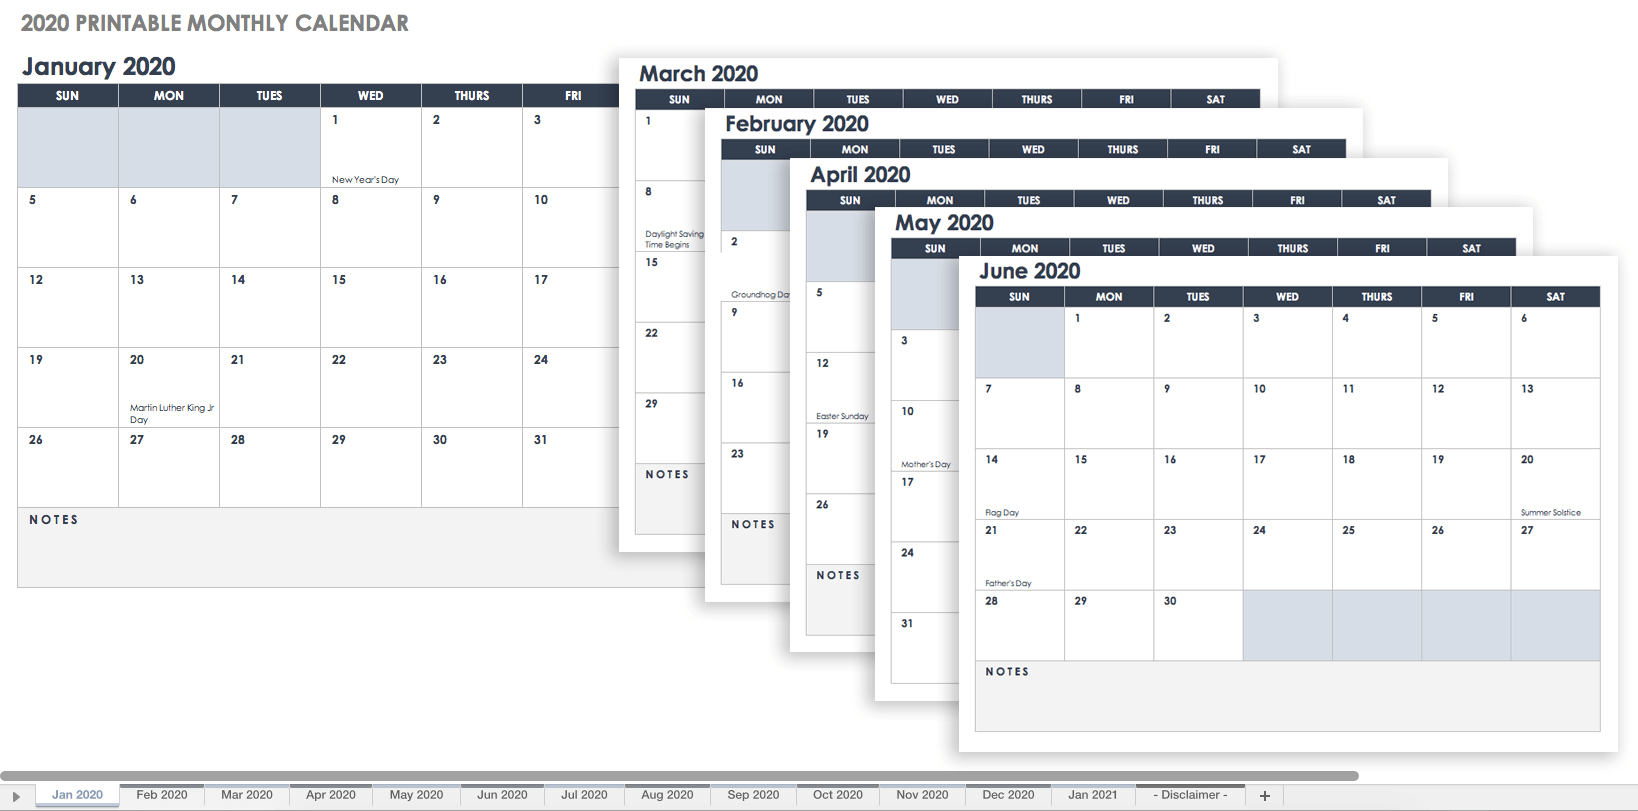 Free, Printable Excel Calendar Templates For 2019 & On | Smartsheet within Calendar To Type On 2019 - 2020